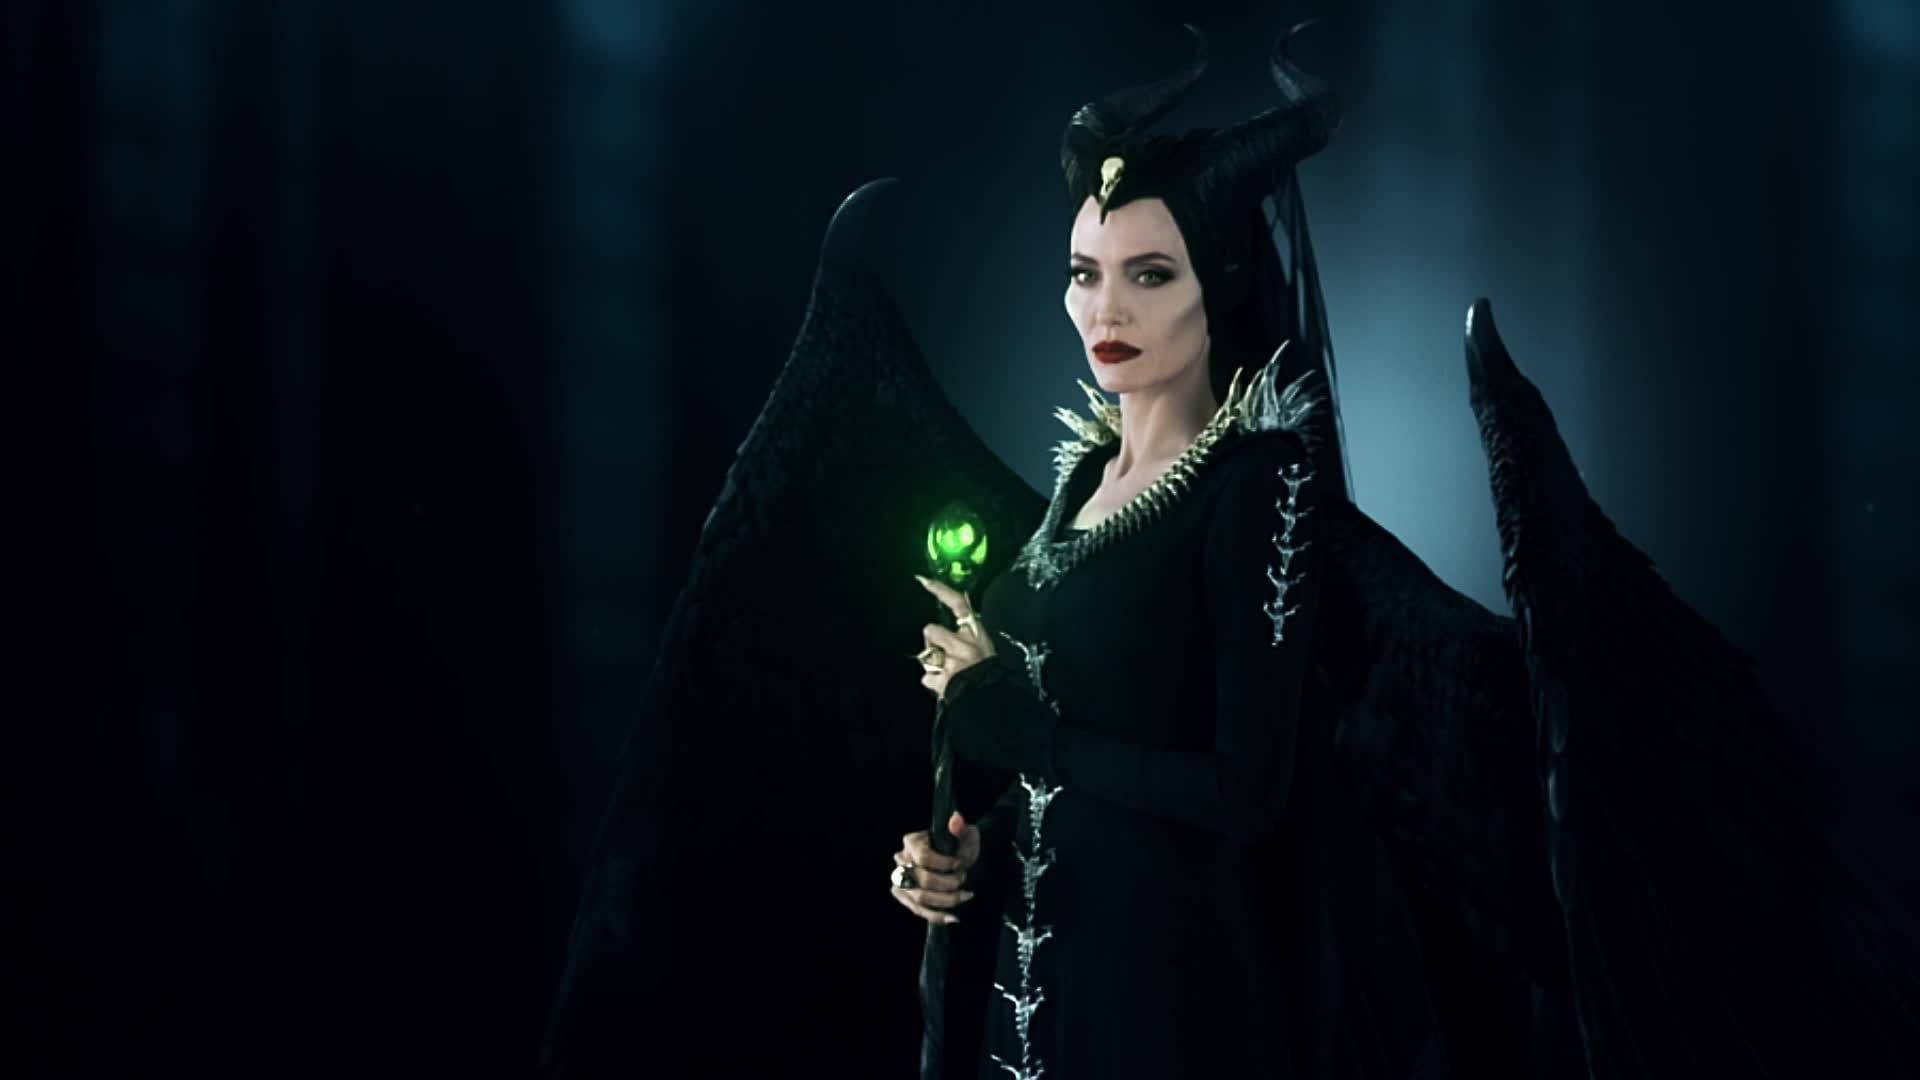 Featurette: Disney's Maleficent: Mistress of Evil